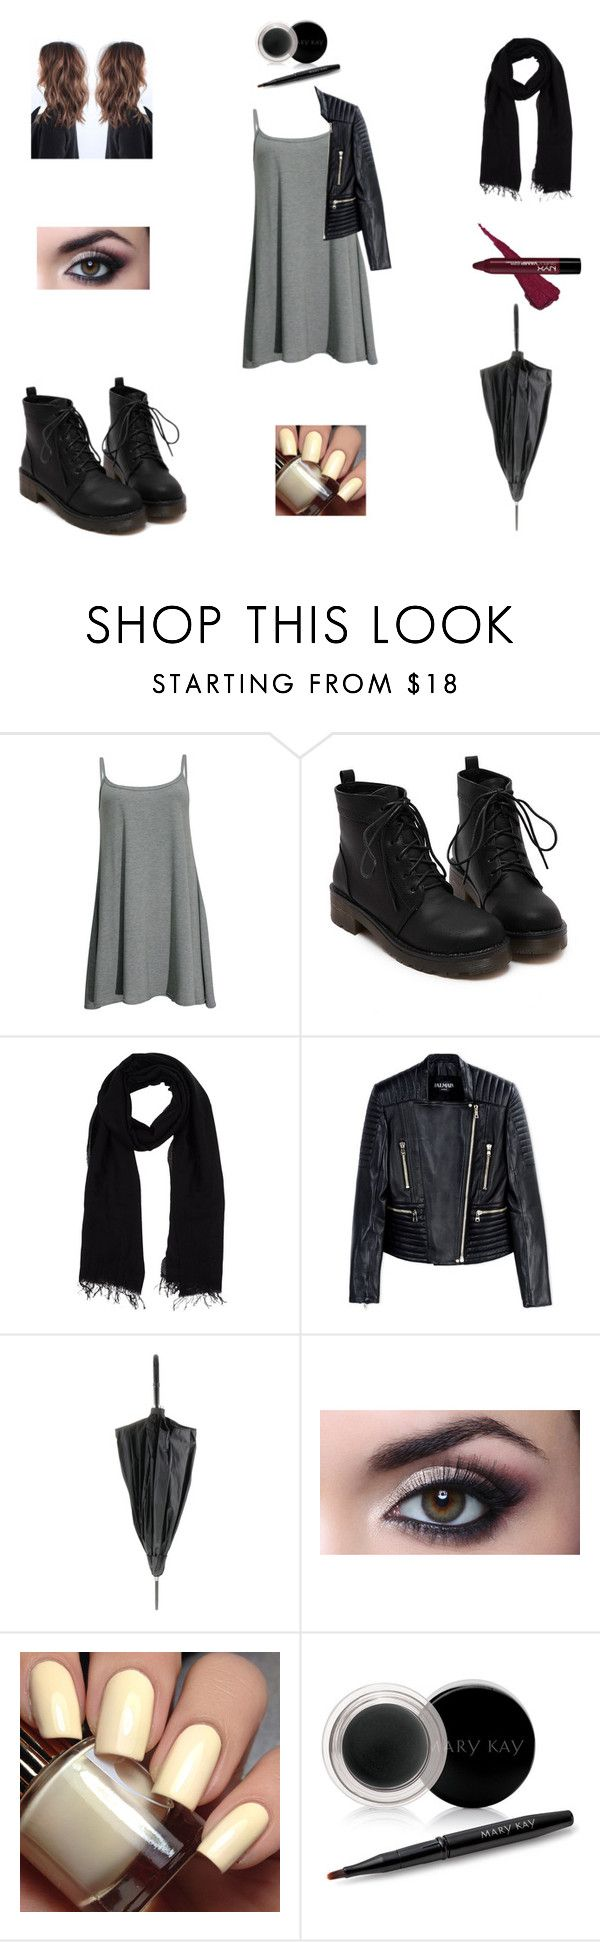 """""""Unbenannt #76"""" by geekyfashion1 ❤ liked on Polyvore featuring Blue Les Copains, Balmain, Jean-Paul Gaultier and Mary Kay"""